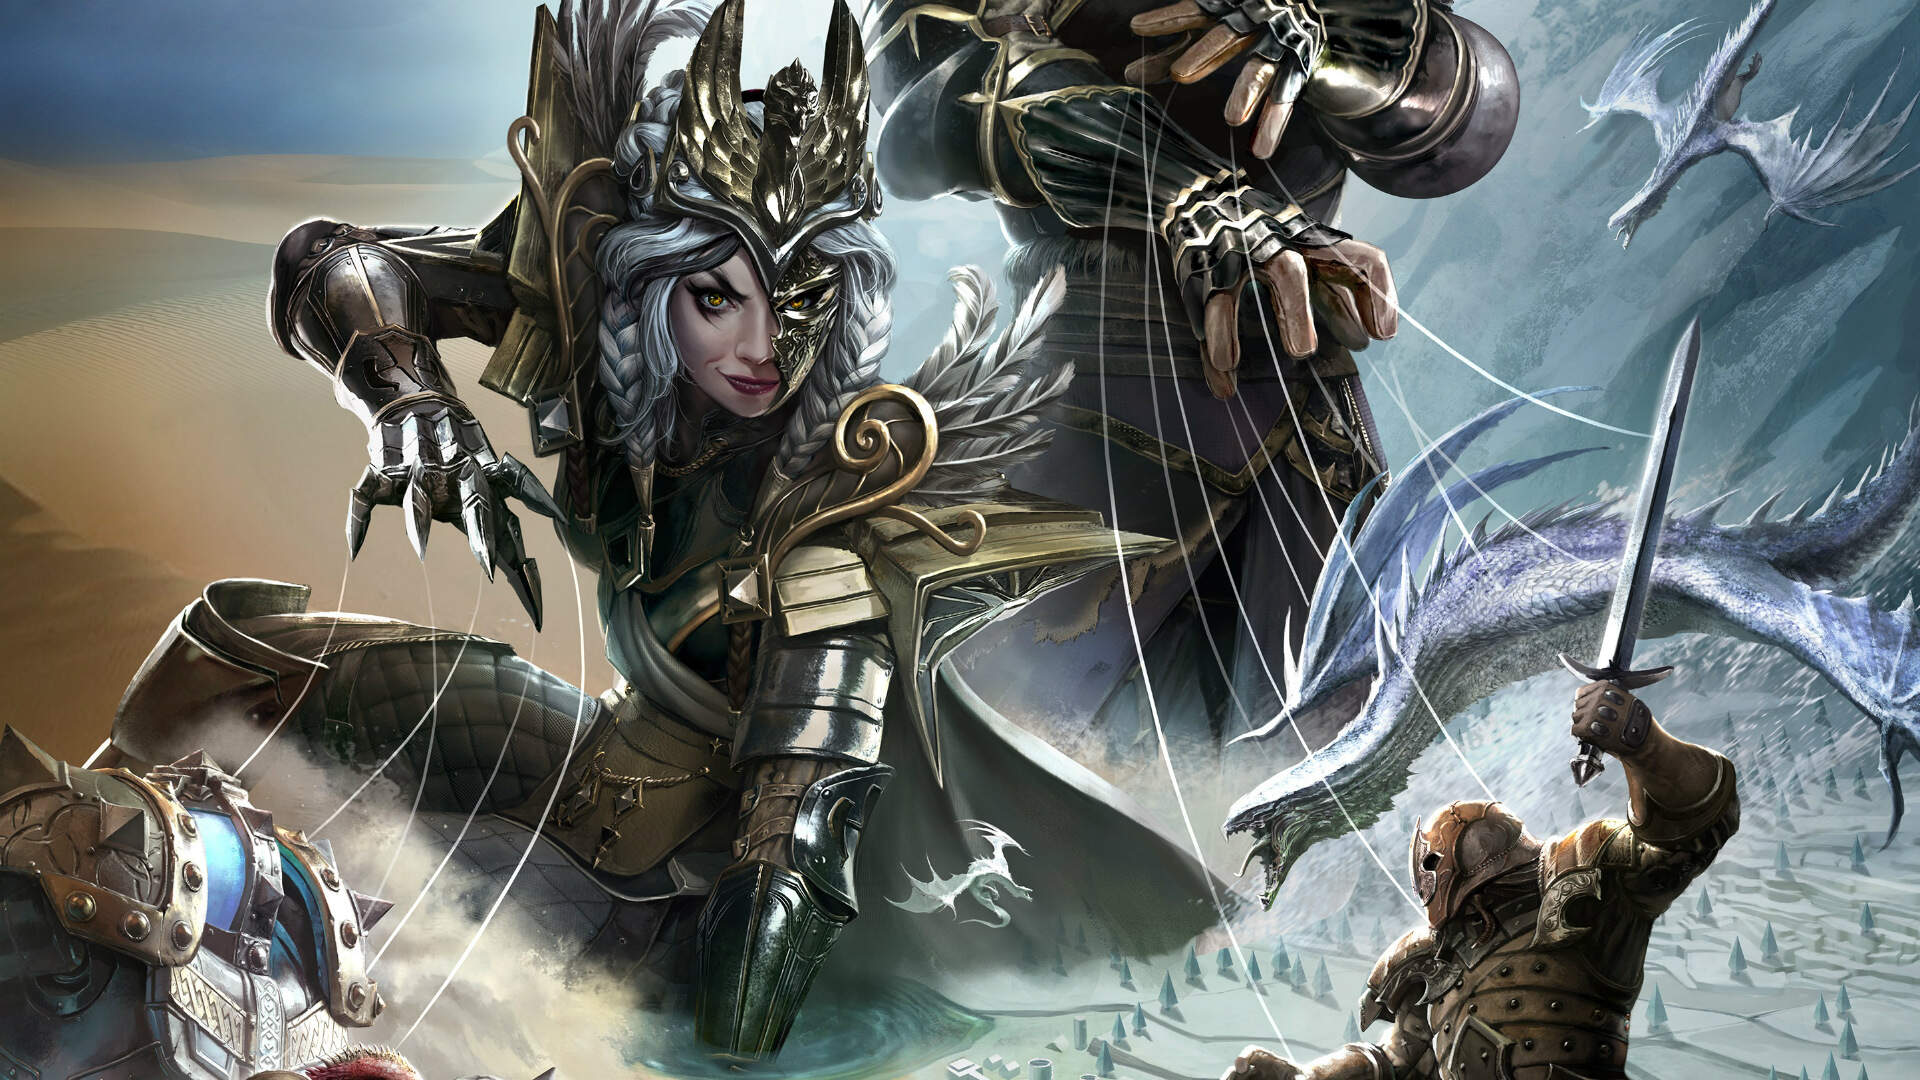 Divinity: Fallen Heroes Hands-On: We Talk to Larian Studios About Its Surprising Divinity: Original Sin 2 Spinoff